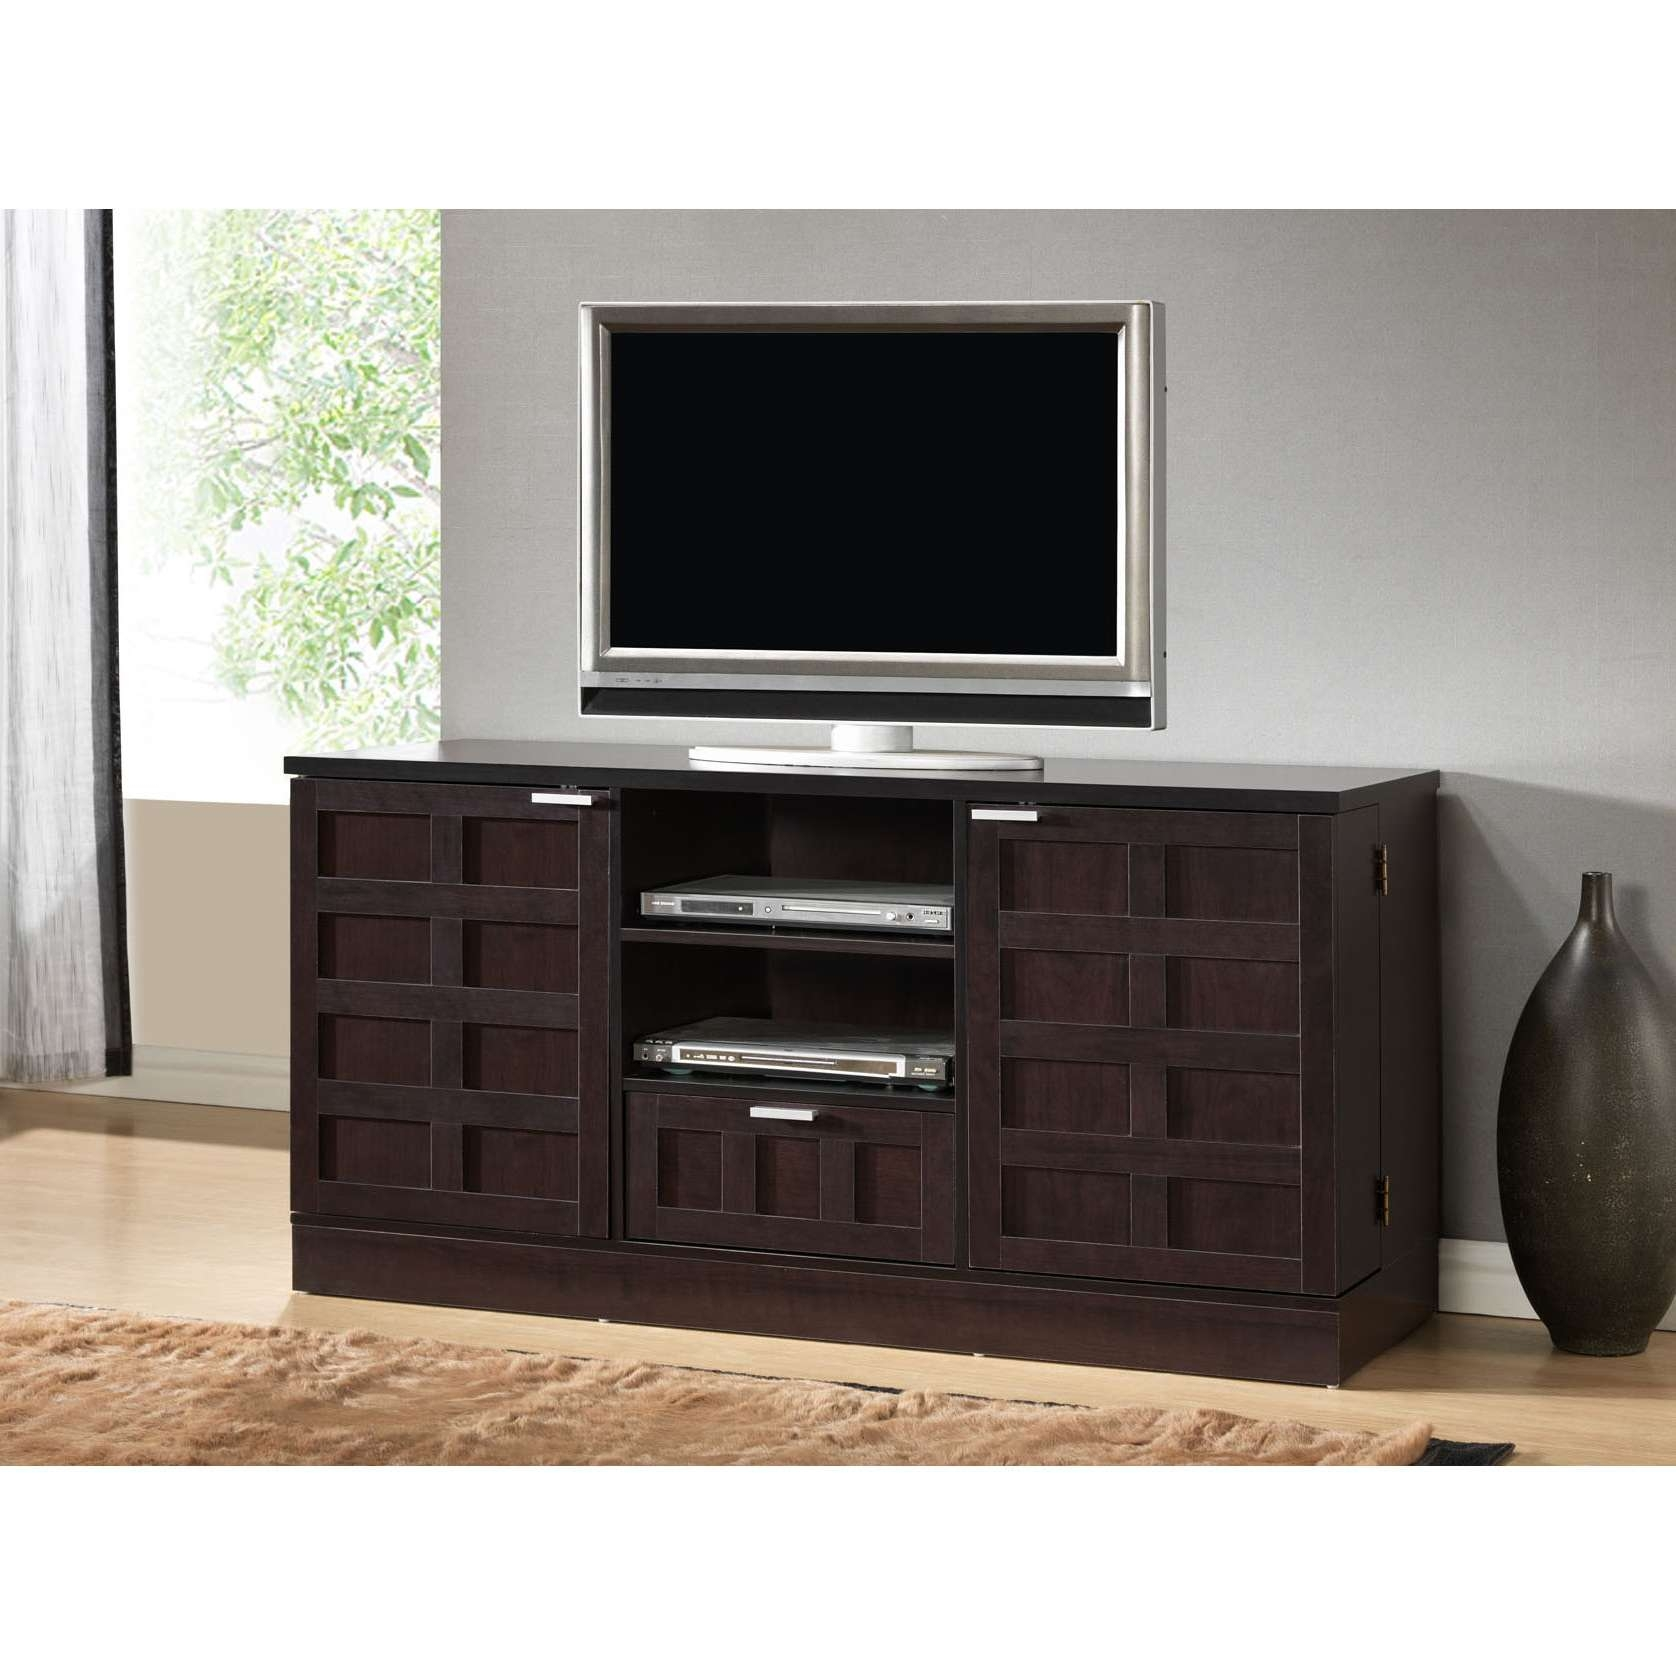 Black Wooden Tv Cabinet With Doors And Racks Also Single Drawer On Regarding Black Tv Cabinets With Doors (View 5 of 20)